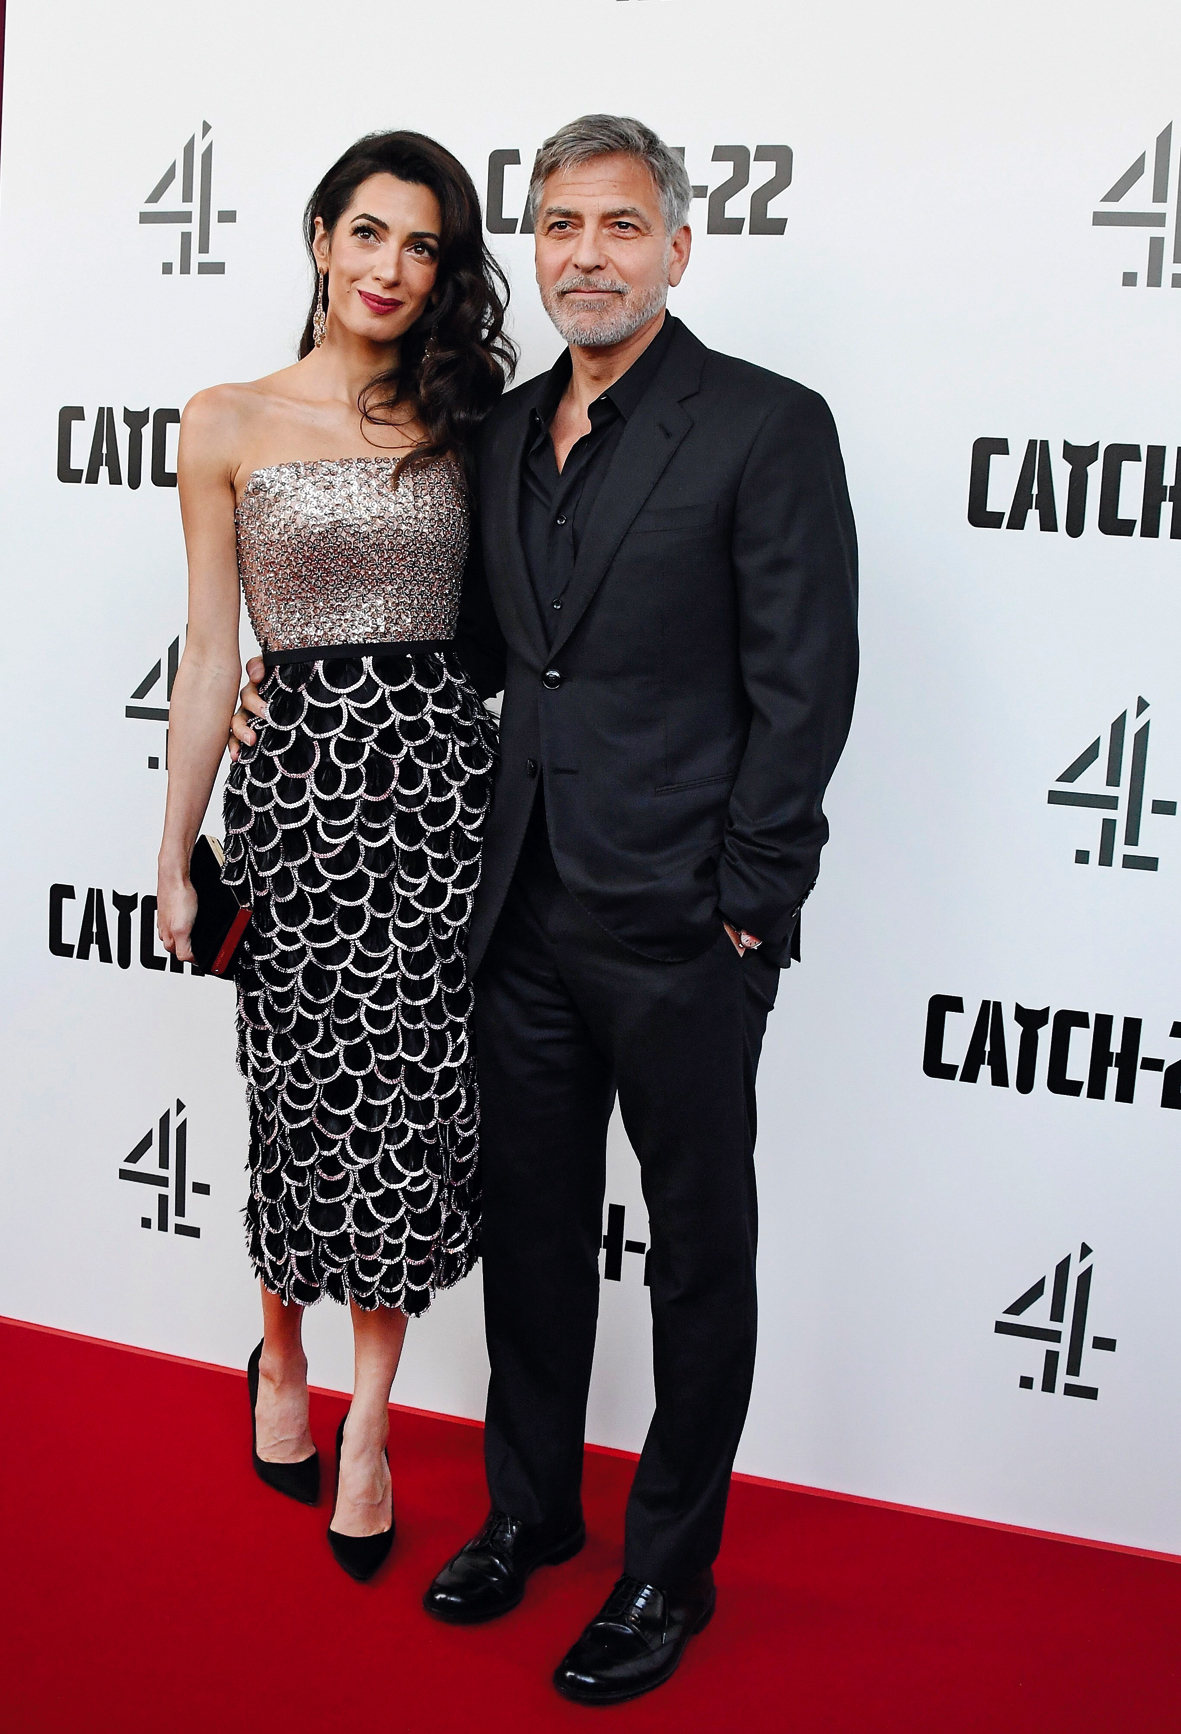 1622047080 774 George Clooney turned 60 ten days in the life of